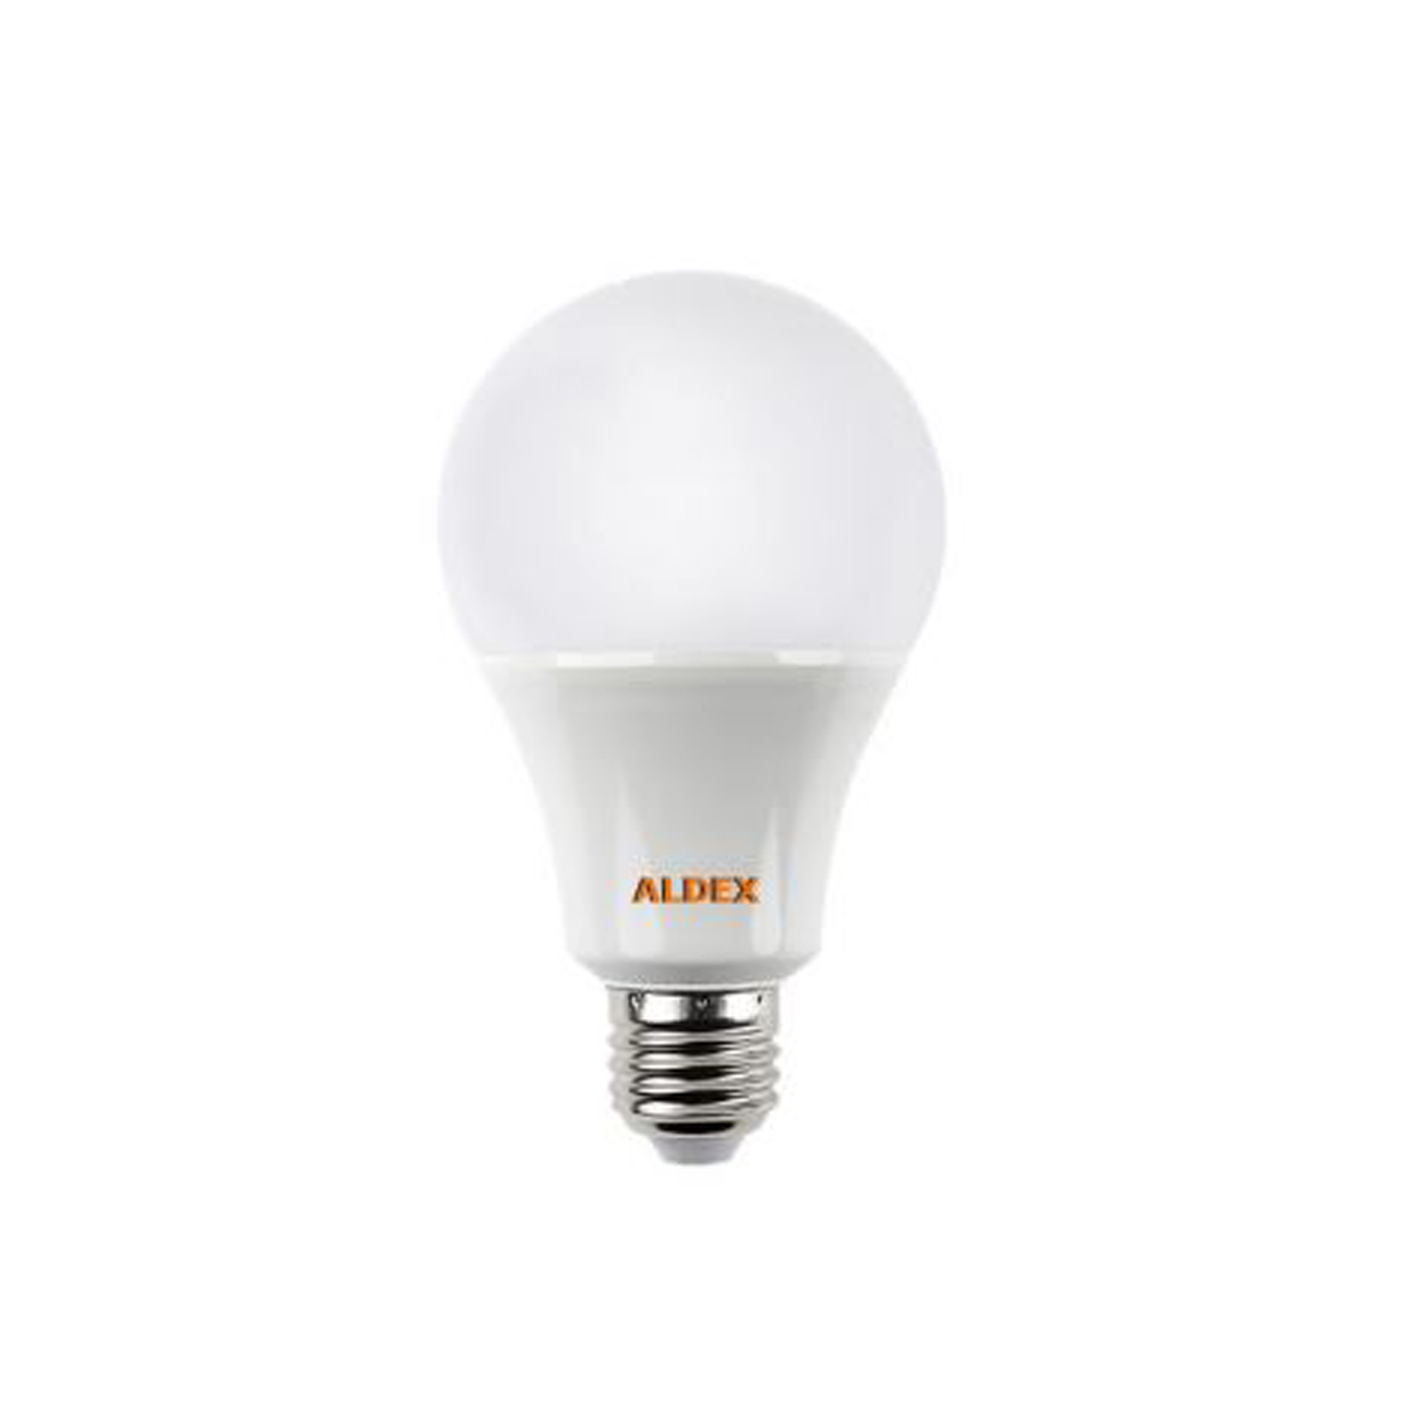 Aldex 15W 6500K E27 Led Ampul